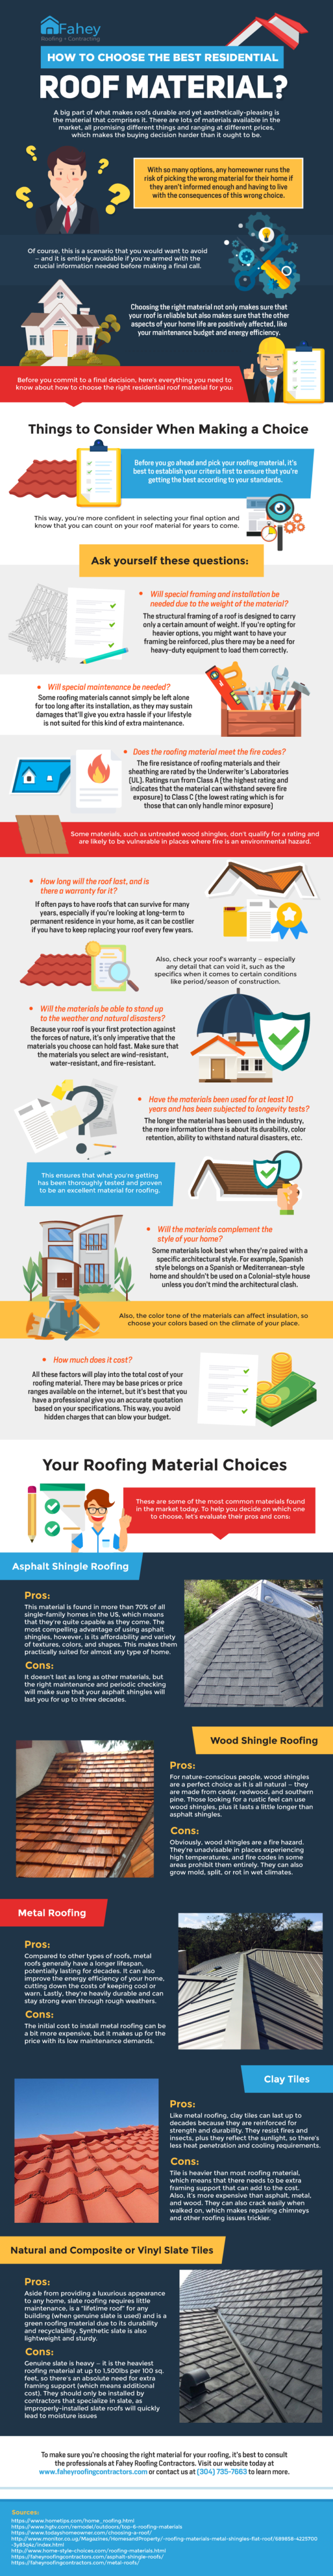 How To Choose The Best Residential Roof Material? (Infographic)